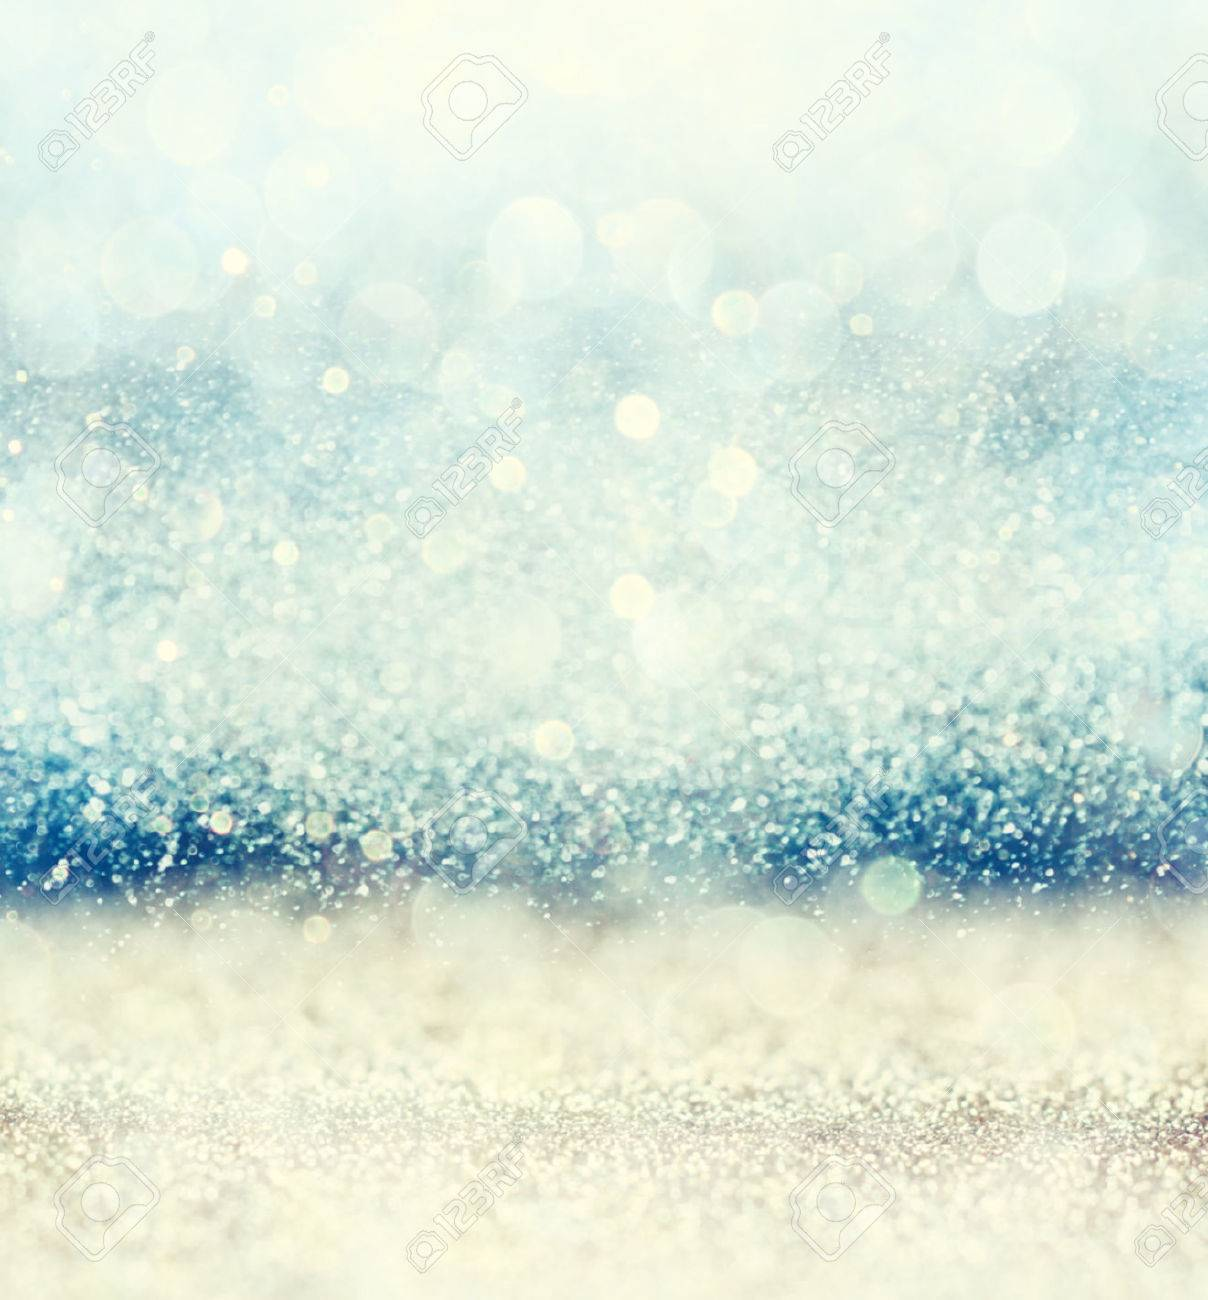 glitter vintage lights background with light burst gold blue and white defocused stock